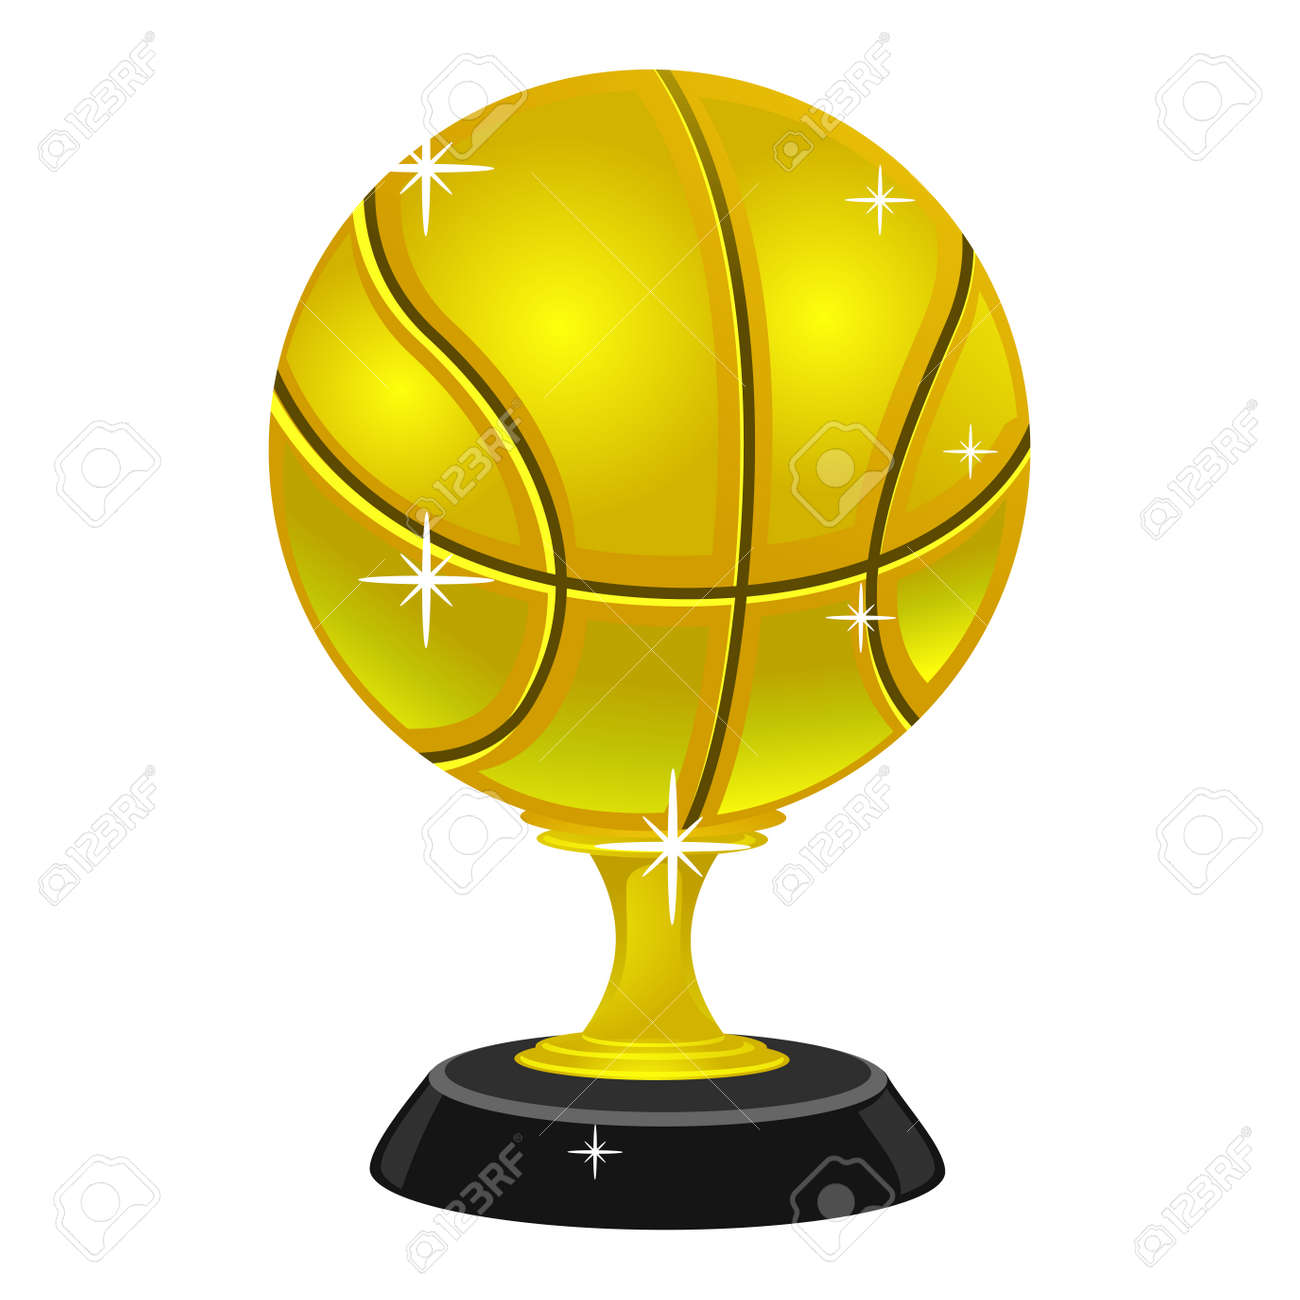 Vector Illustration Of Gold Basketball Trophy Royalty Free Cliparts